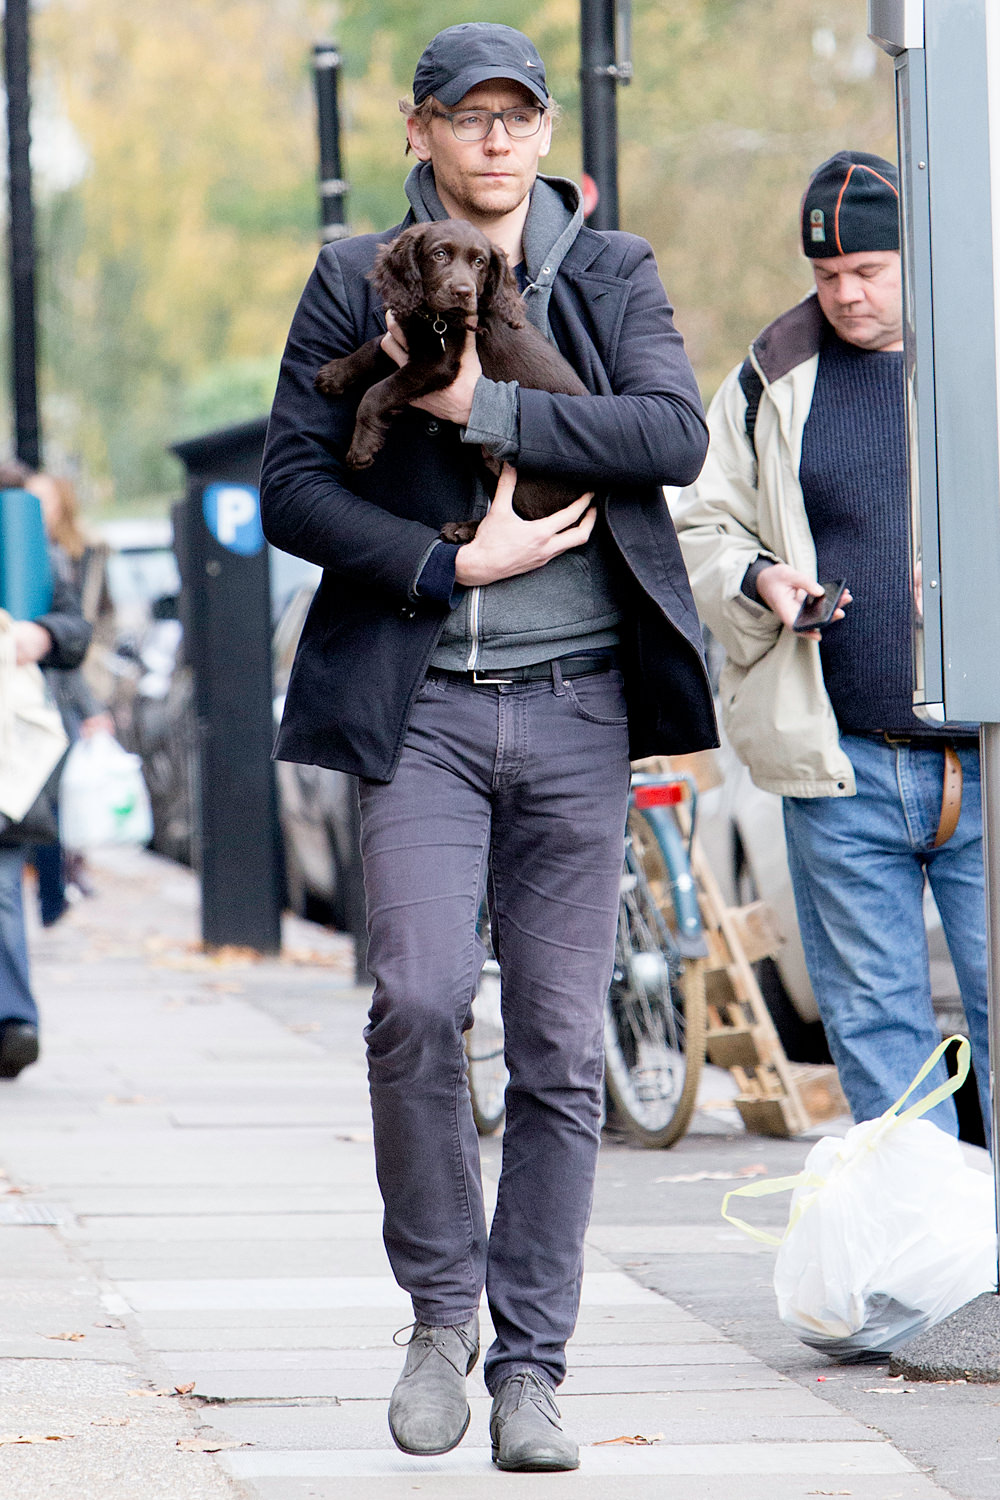 Tom Hiddleston Holds His New Puppy in London, For All to ...